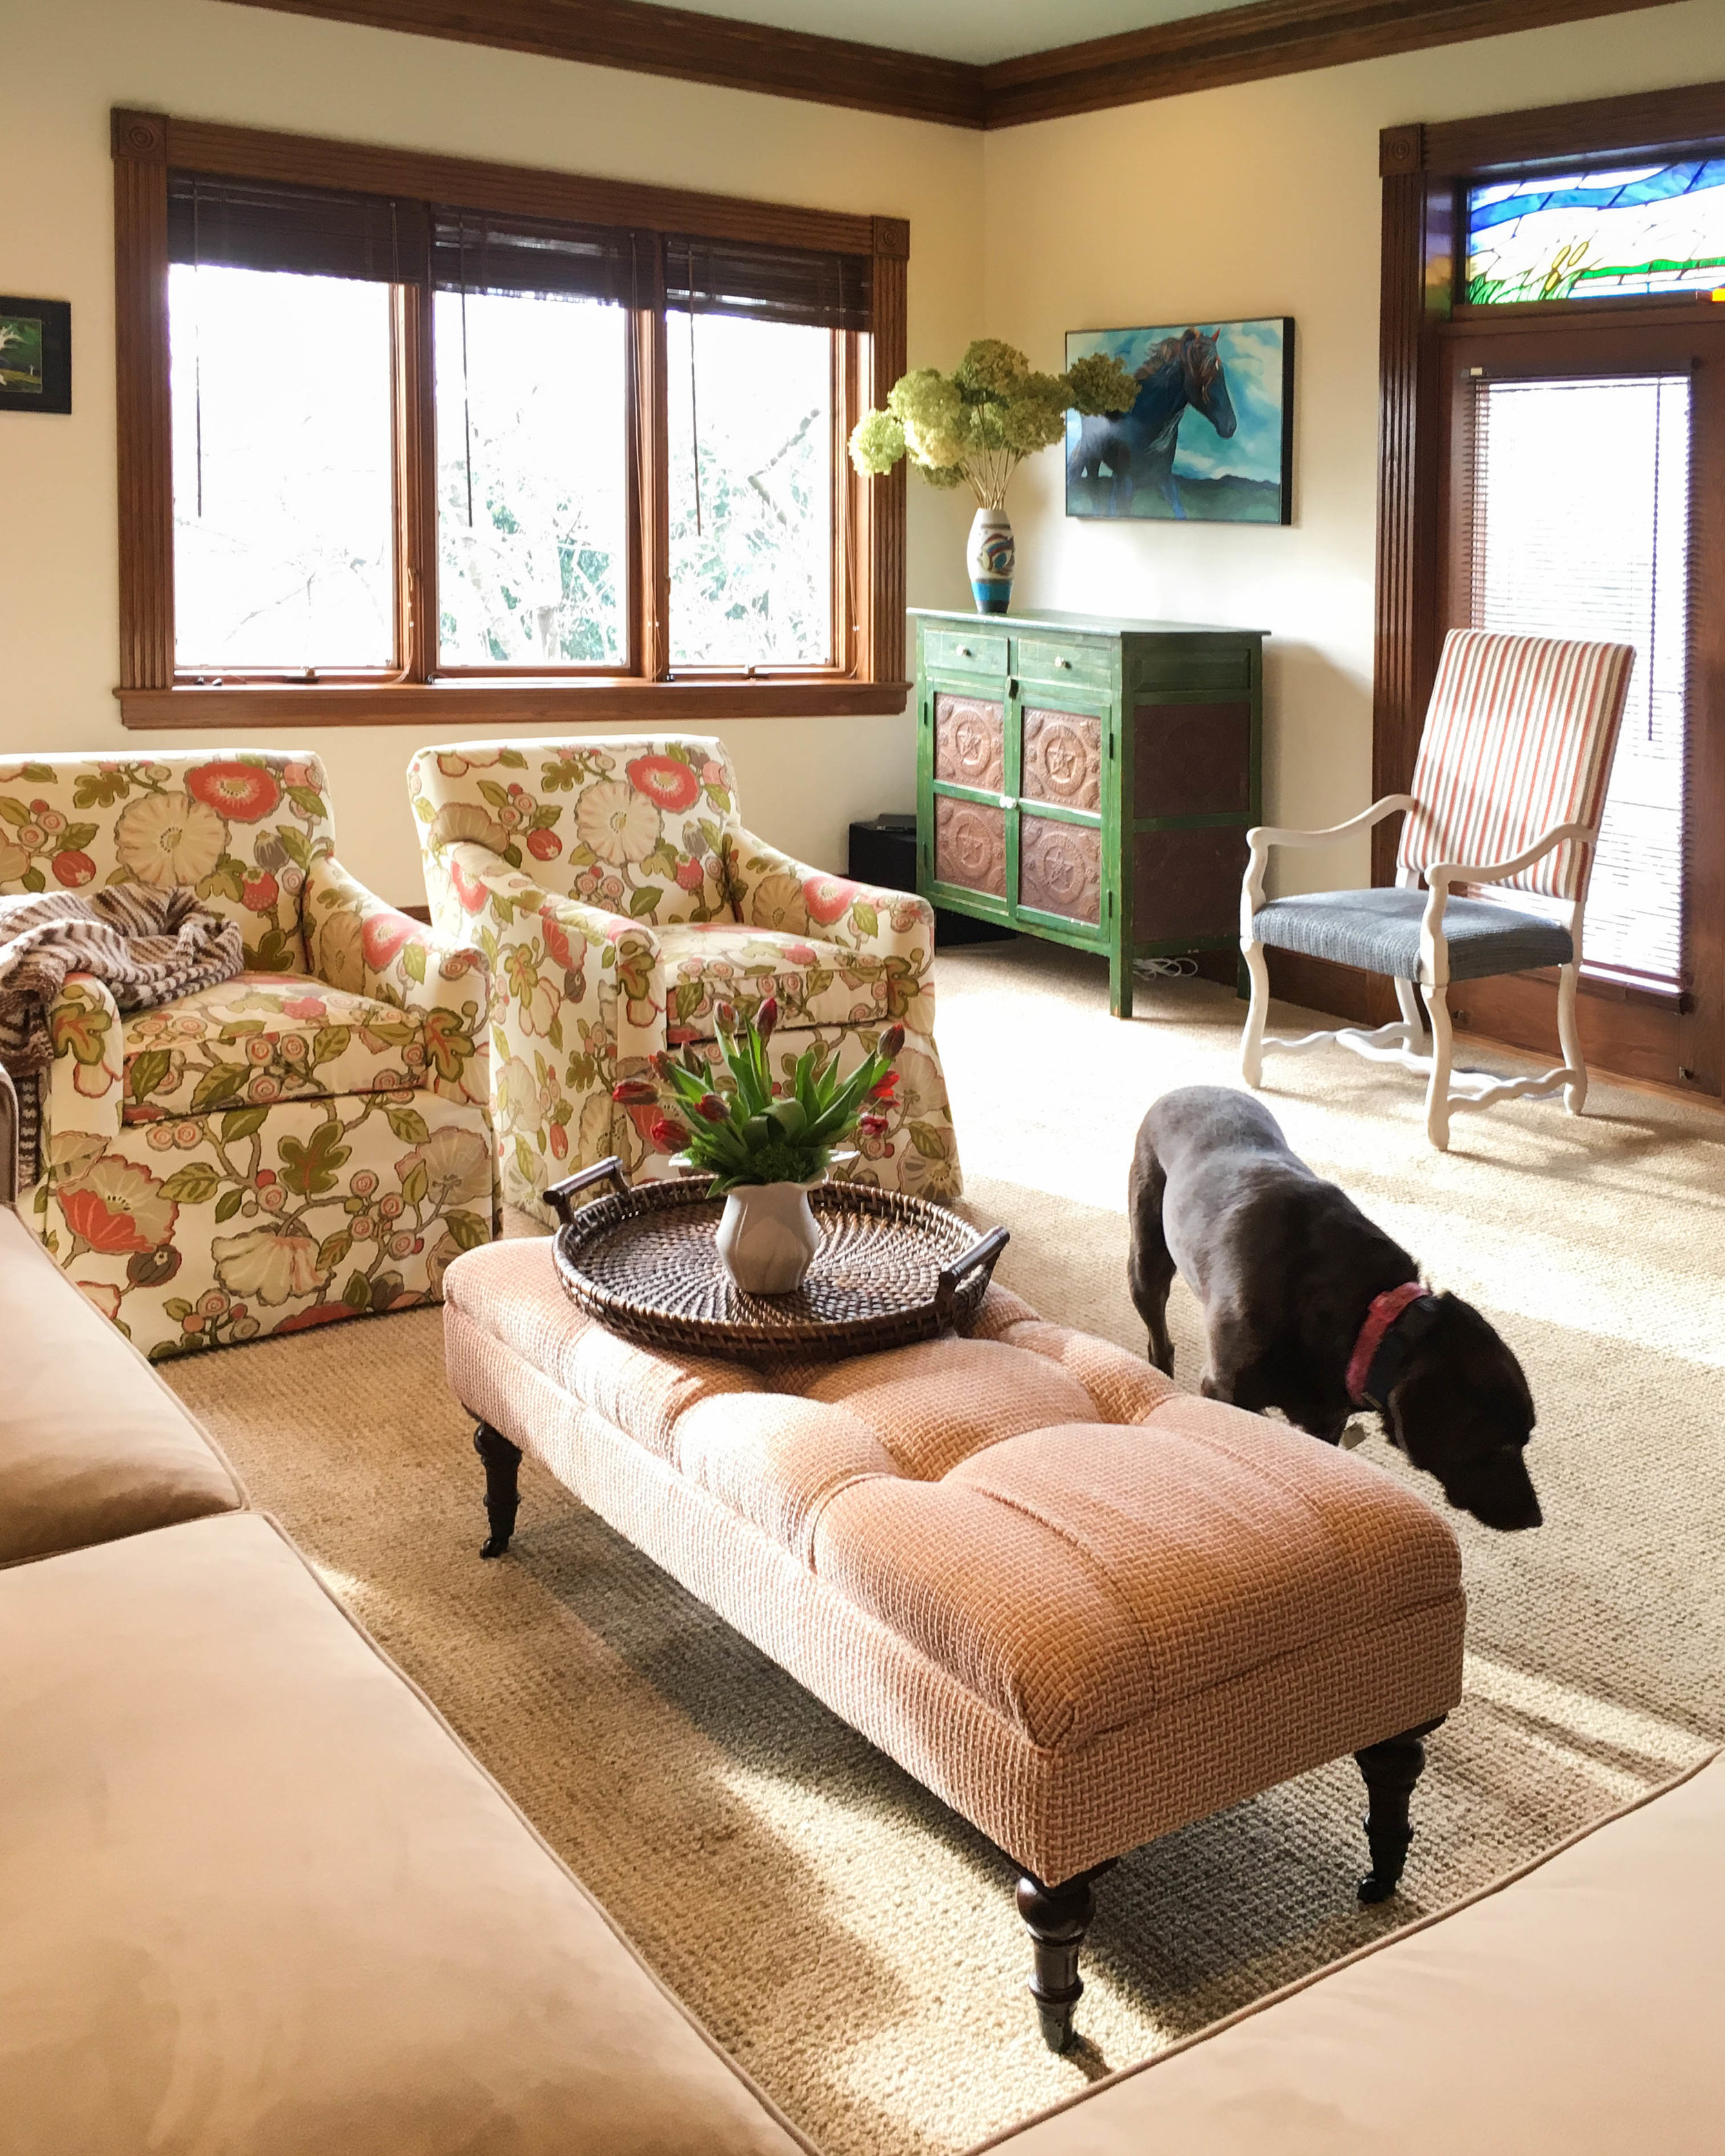 In this happy gathering room on a creek side property, one can experience the joys of each season through large wood framed windows. This served as a large part of the inspiration for this project.